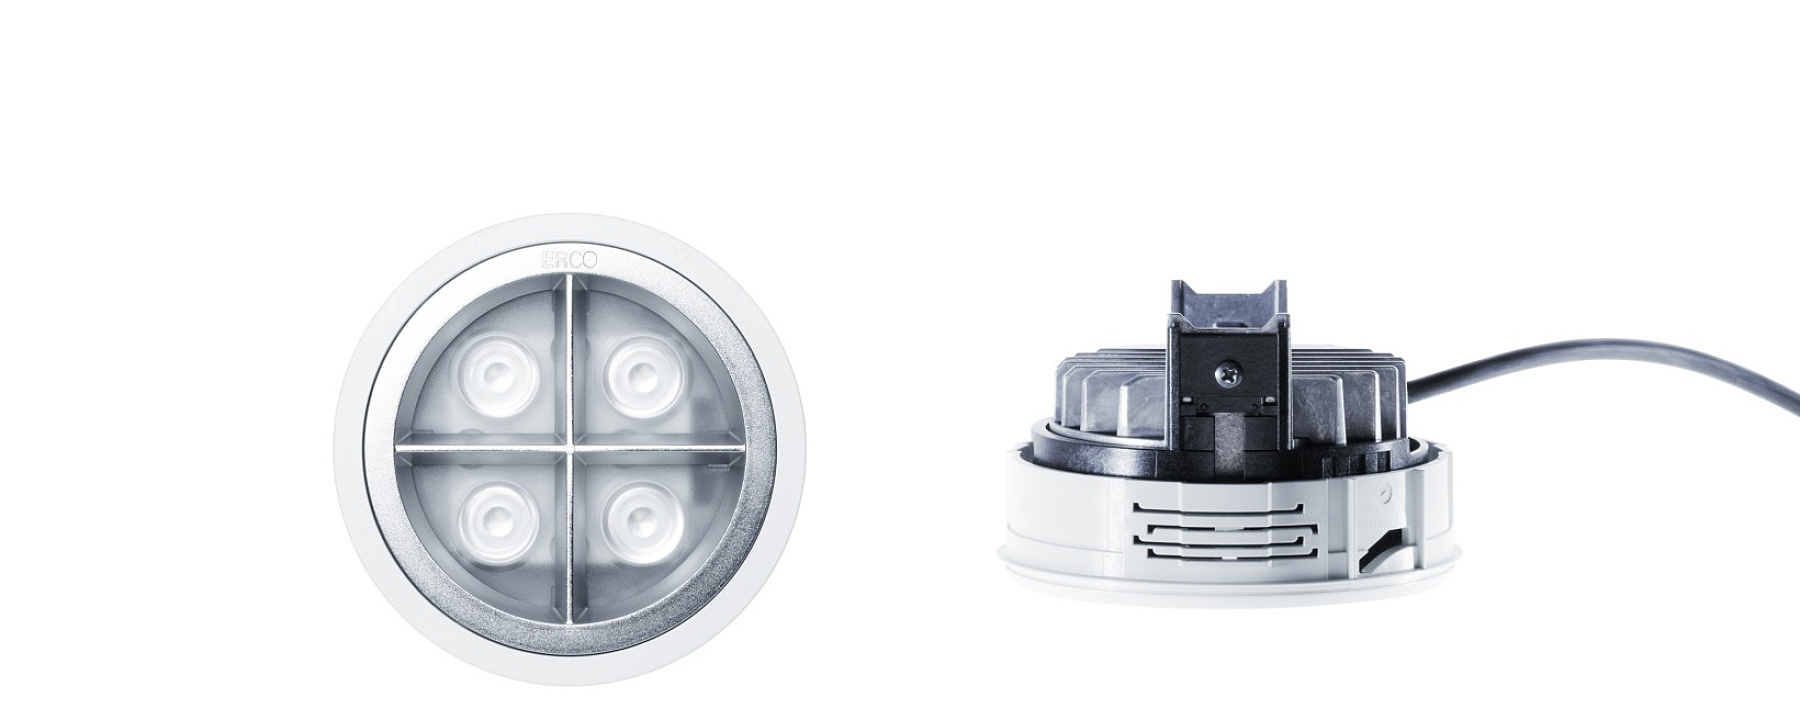 Compact - Recessed luminaires